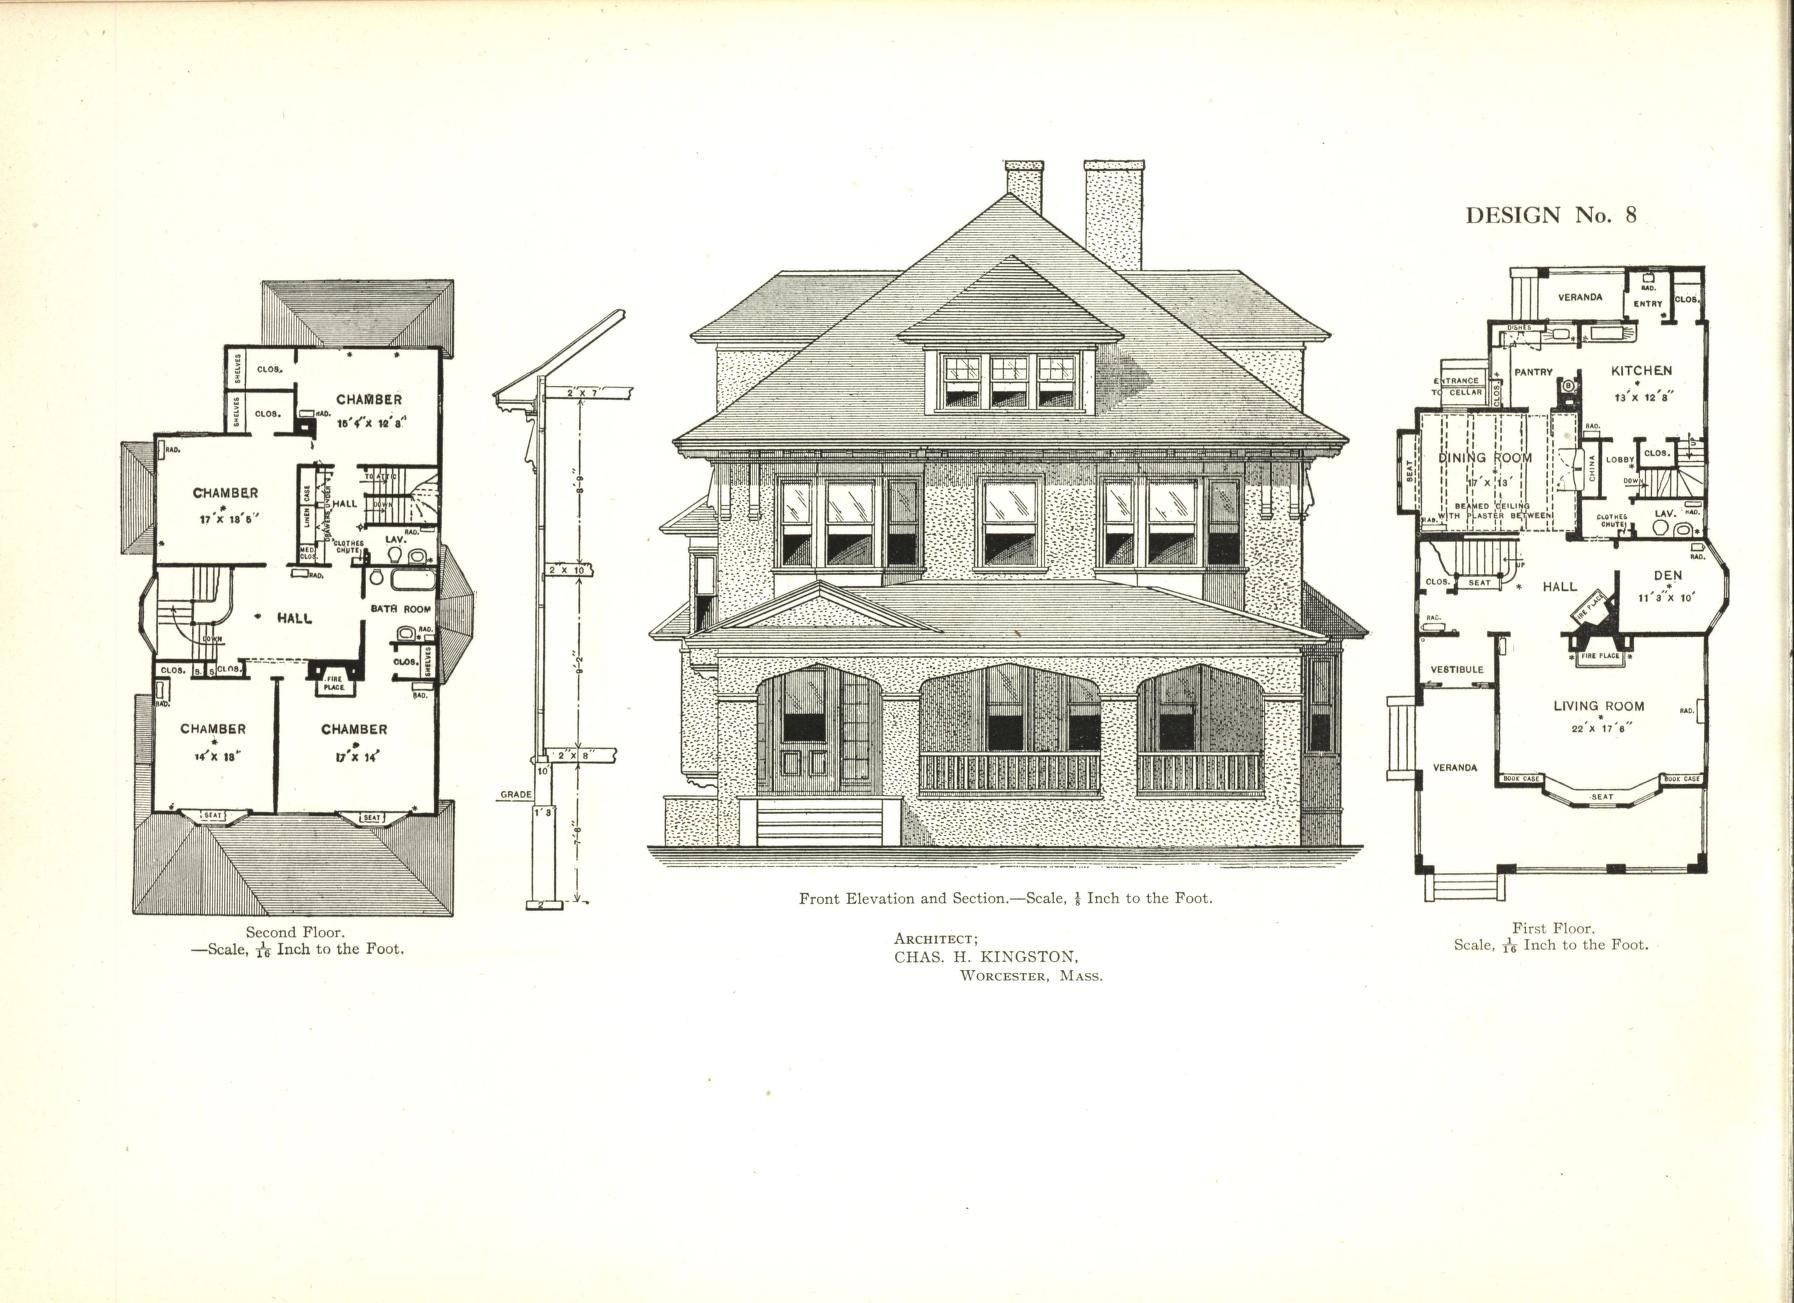 Cement Houses And Private Garages With Constructive Details David Williams Co Free Download Borrow And Streaming Internet Archive Cement House Vintage House Plans Architecture